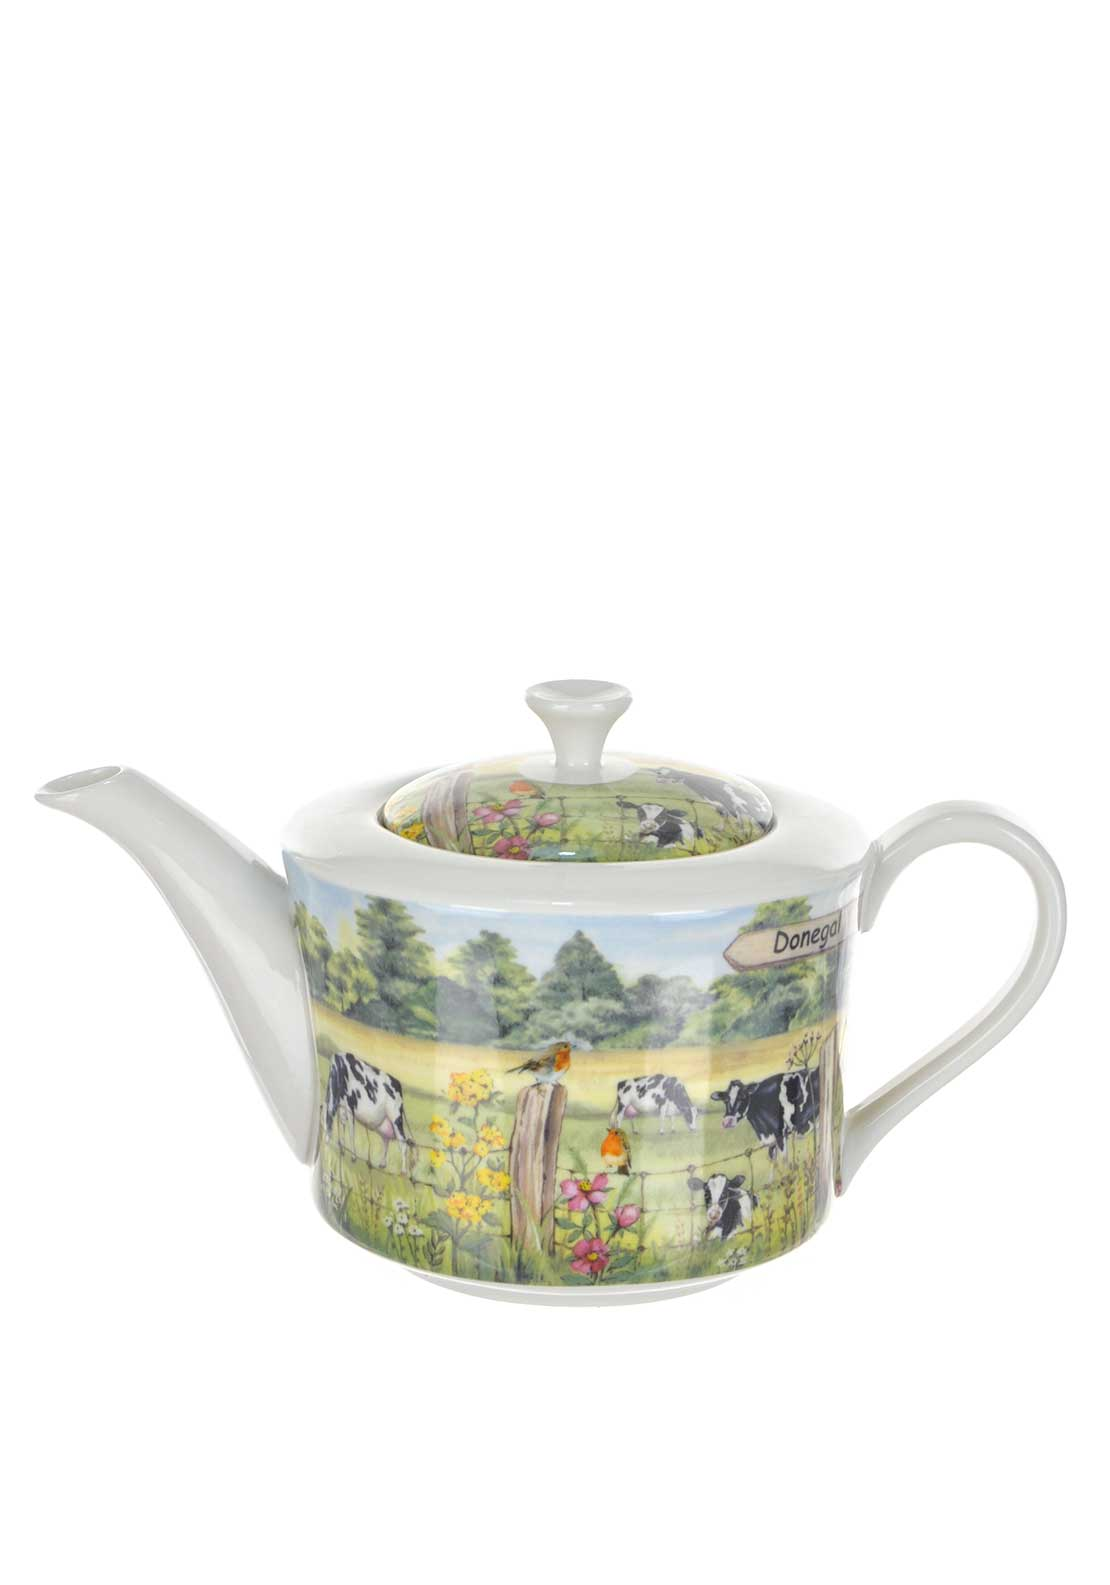 Shannonbridge Ireland Signpost 4 Cup Farm Cow Teapot, Green Multi